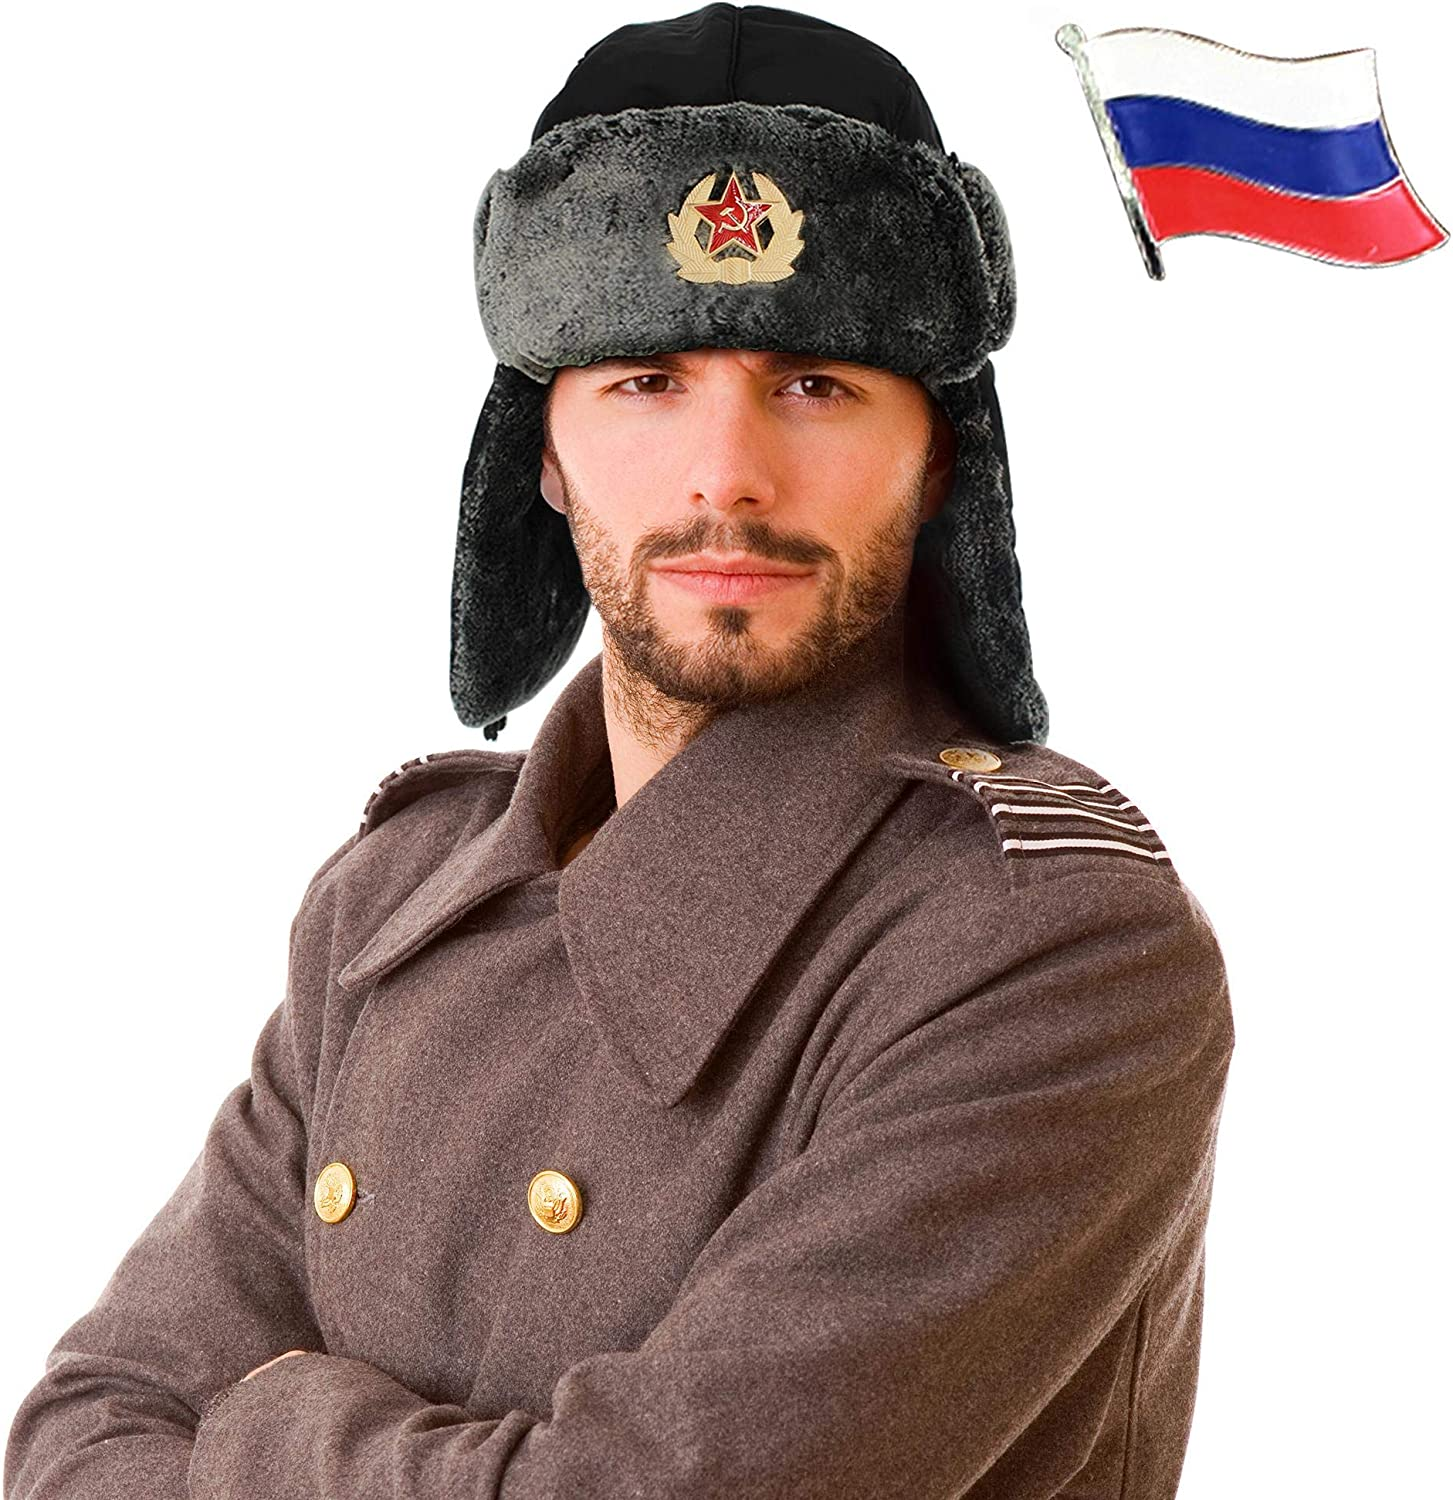 Russian Hat Ushanka + 2 pins. One Size, Unisex Soviet Hat with Ear Flaps & Chin Strap for Cold Weather. Windproof and Waterproof Ushanka Hat – Ideal Winter Trapper Hat for Men & Women. Black